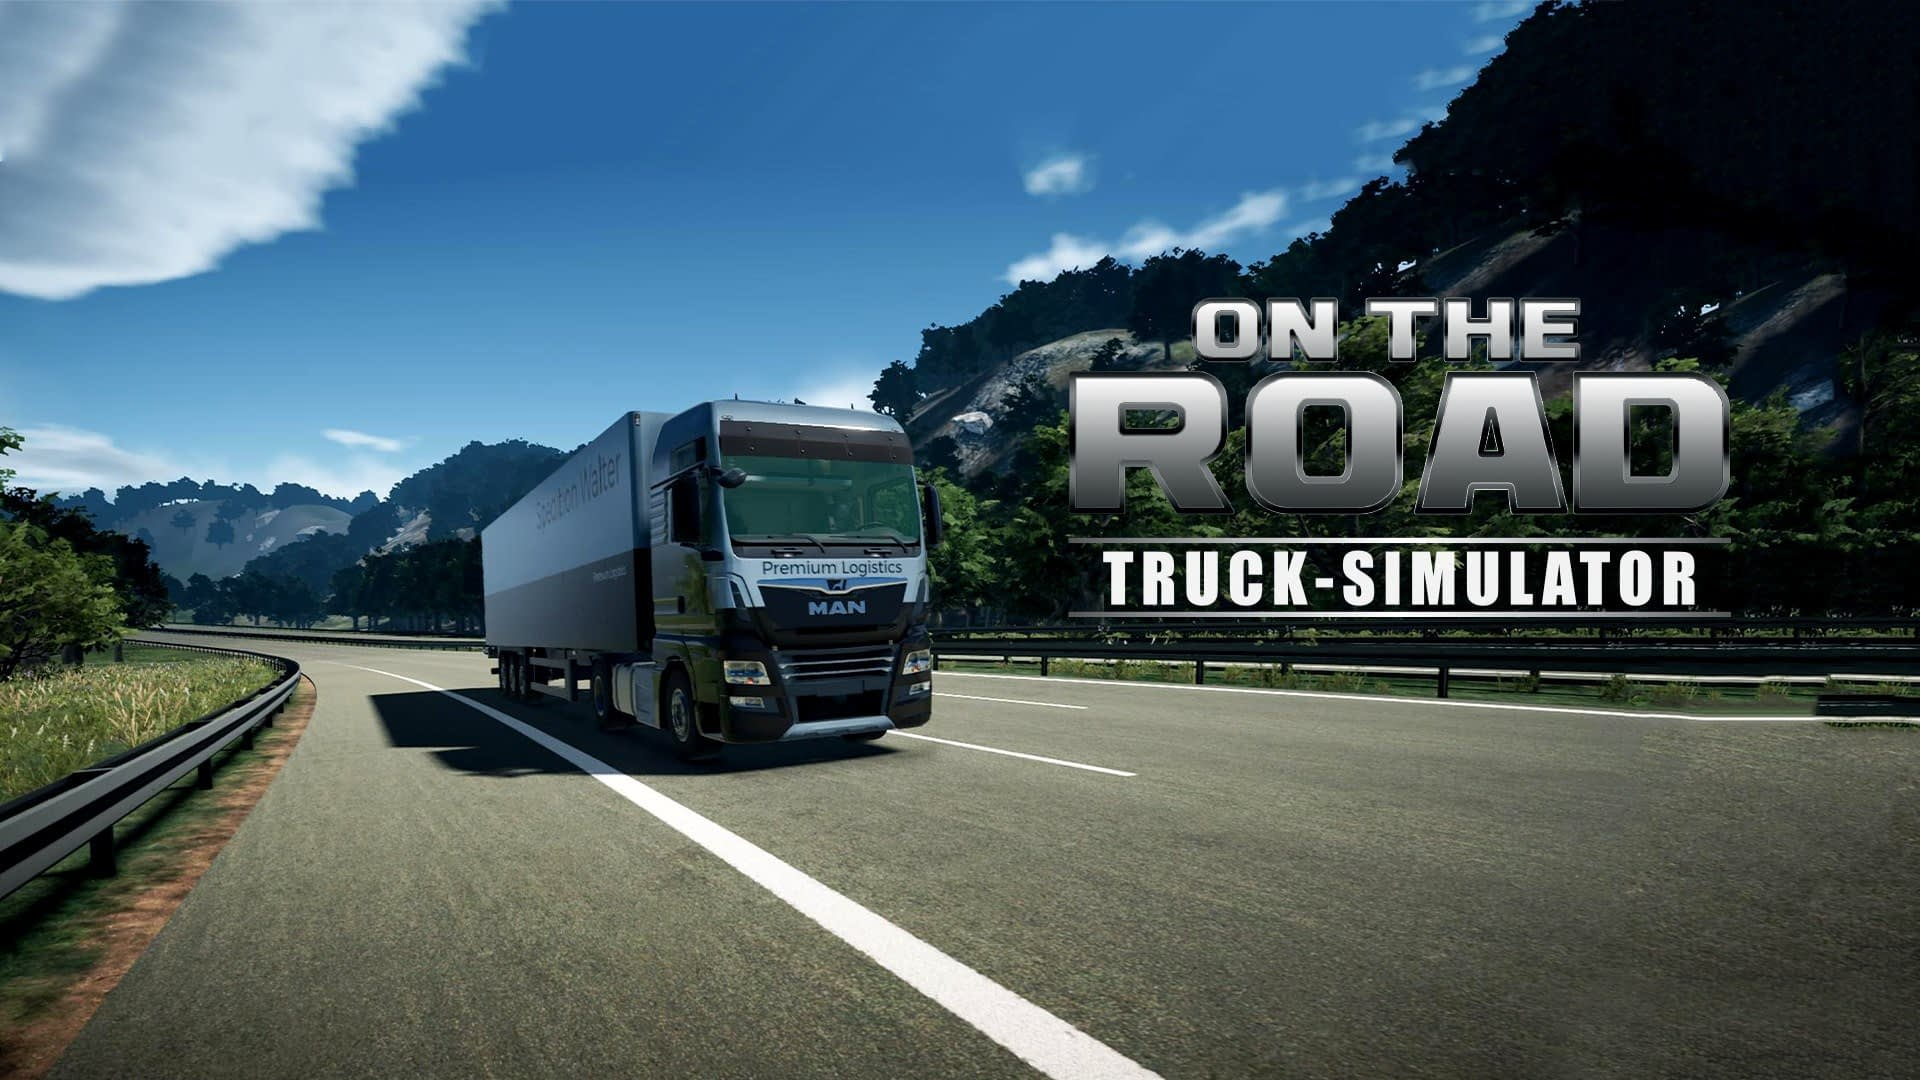 On The Road The Truck Simulator Is Now Available For Digital Pre-order And Pre-download On Xbox One And Xbox Series X|S 1